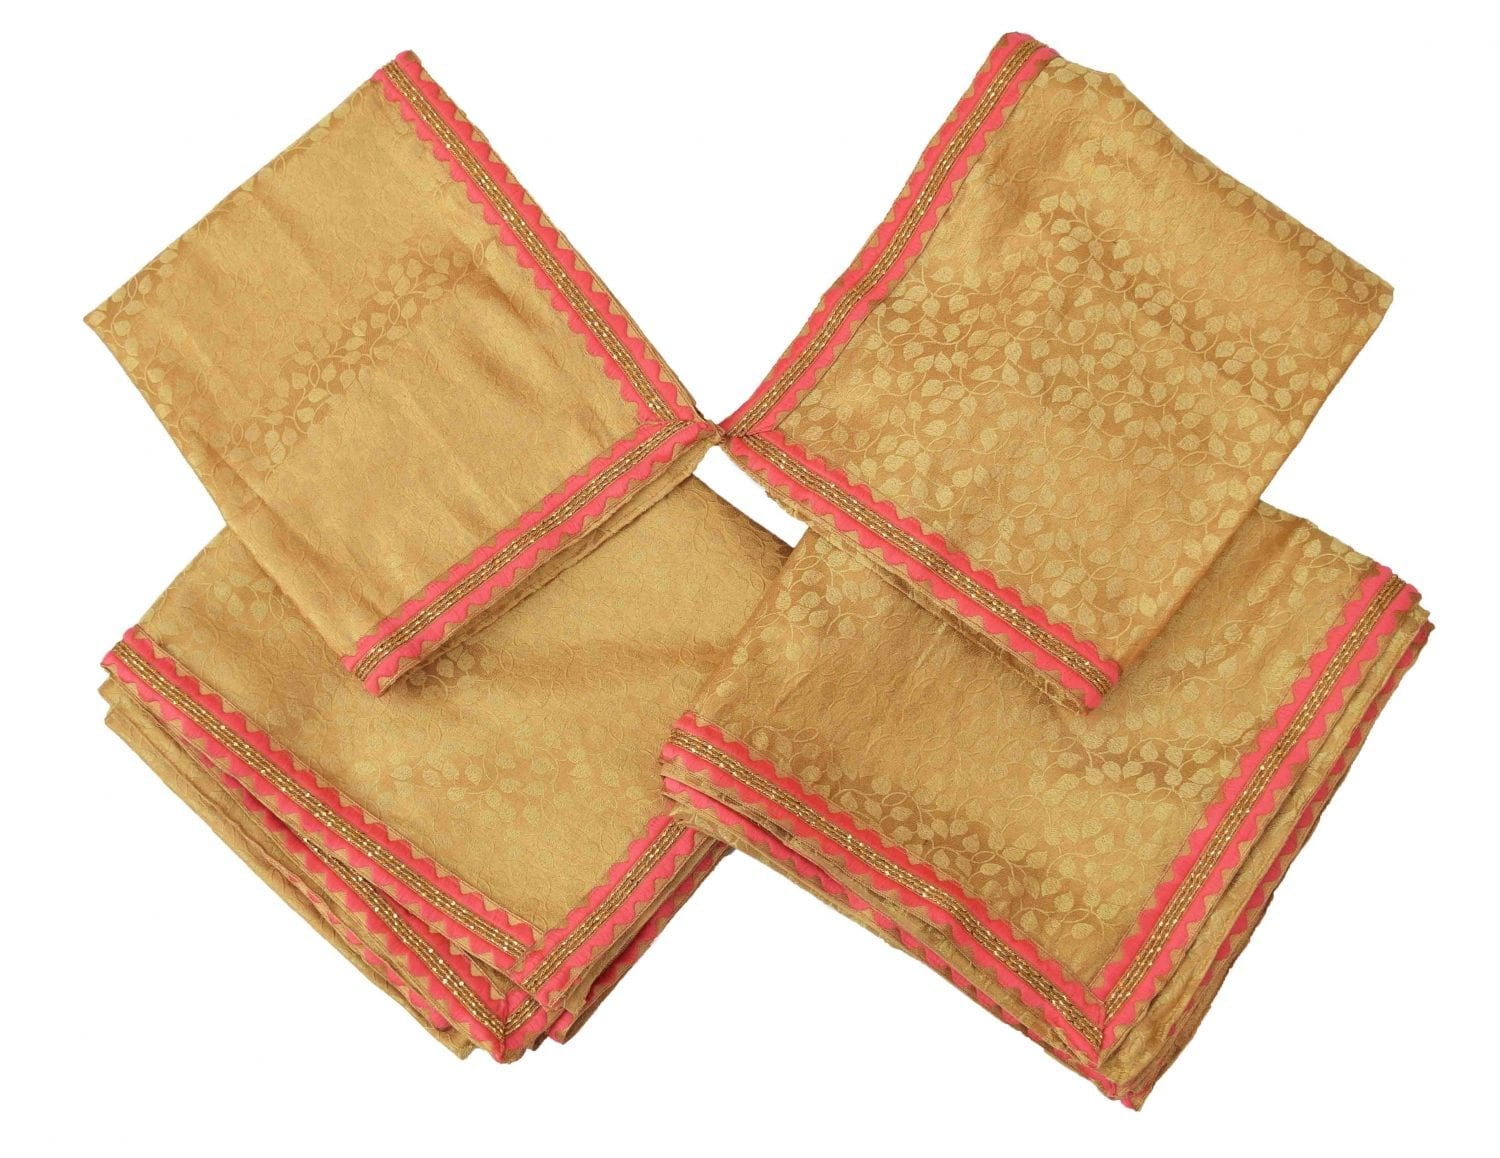 Golden Brocade Rumala Sahib for Shri Guru Granth Sahib Ji RL001 1